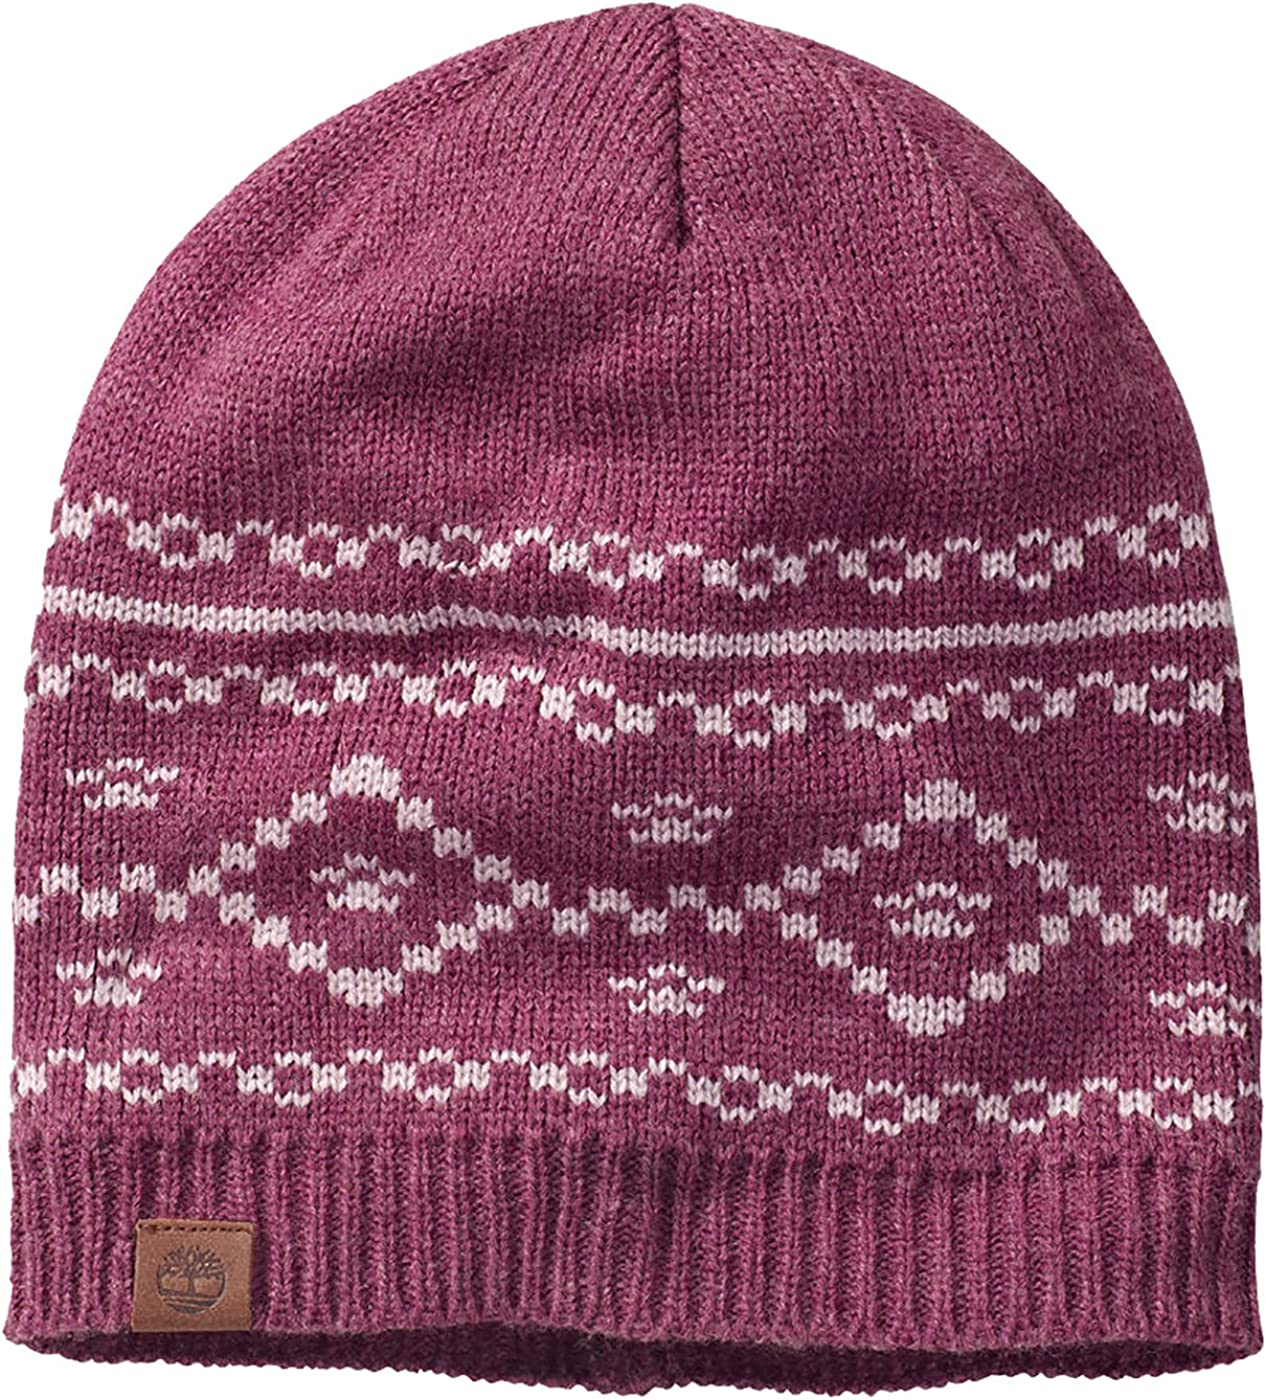 Timberland Women's Patterned Slouchy Beanie